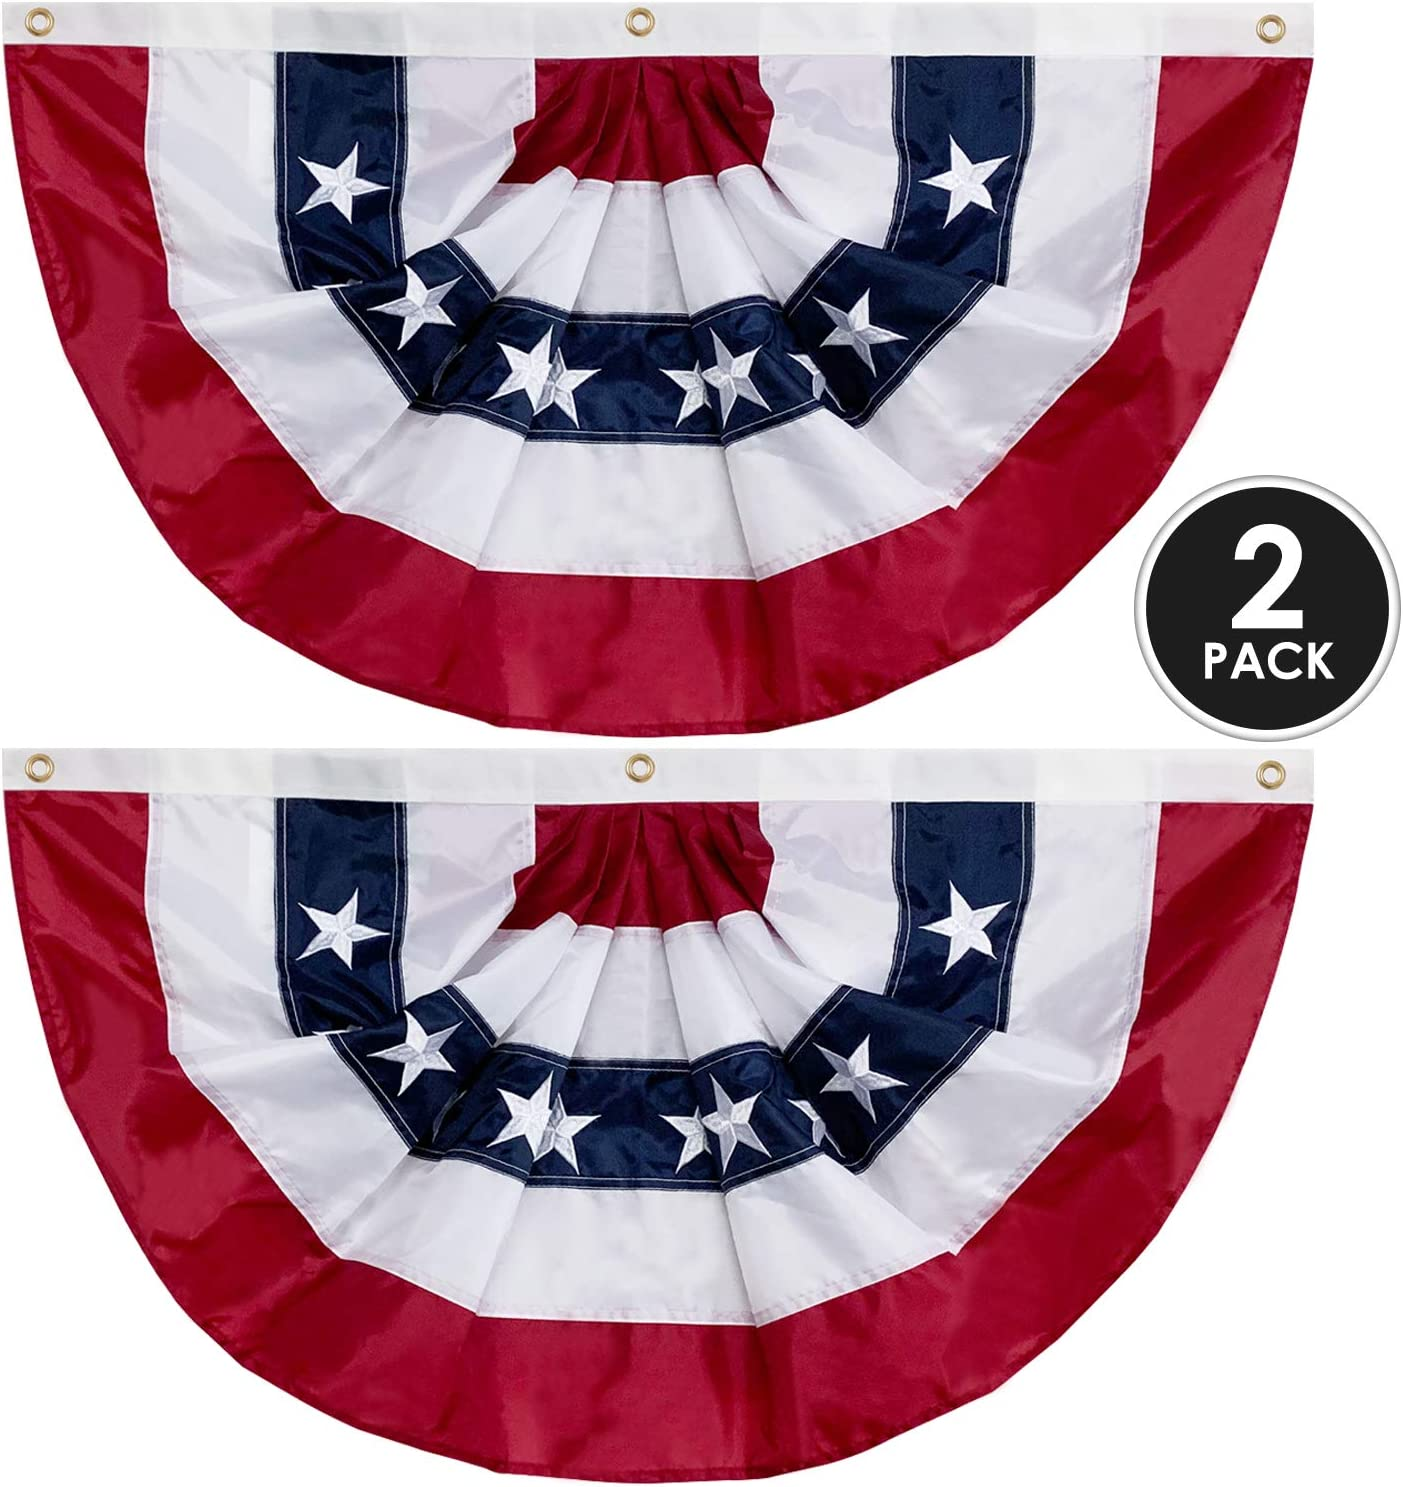 "58""x27"" USA Patriotic Nylon Bunting Pleated Flag, 2 Sided, Embroidered Stars, Sewn Stripes, Grommets- July 4th American Flag Decor Outdoor Use- Inside Outside Porch Rail or Window Decoration (2 Pack)"